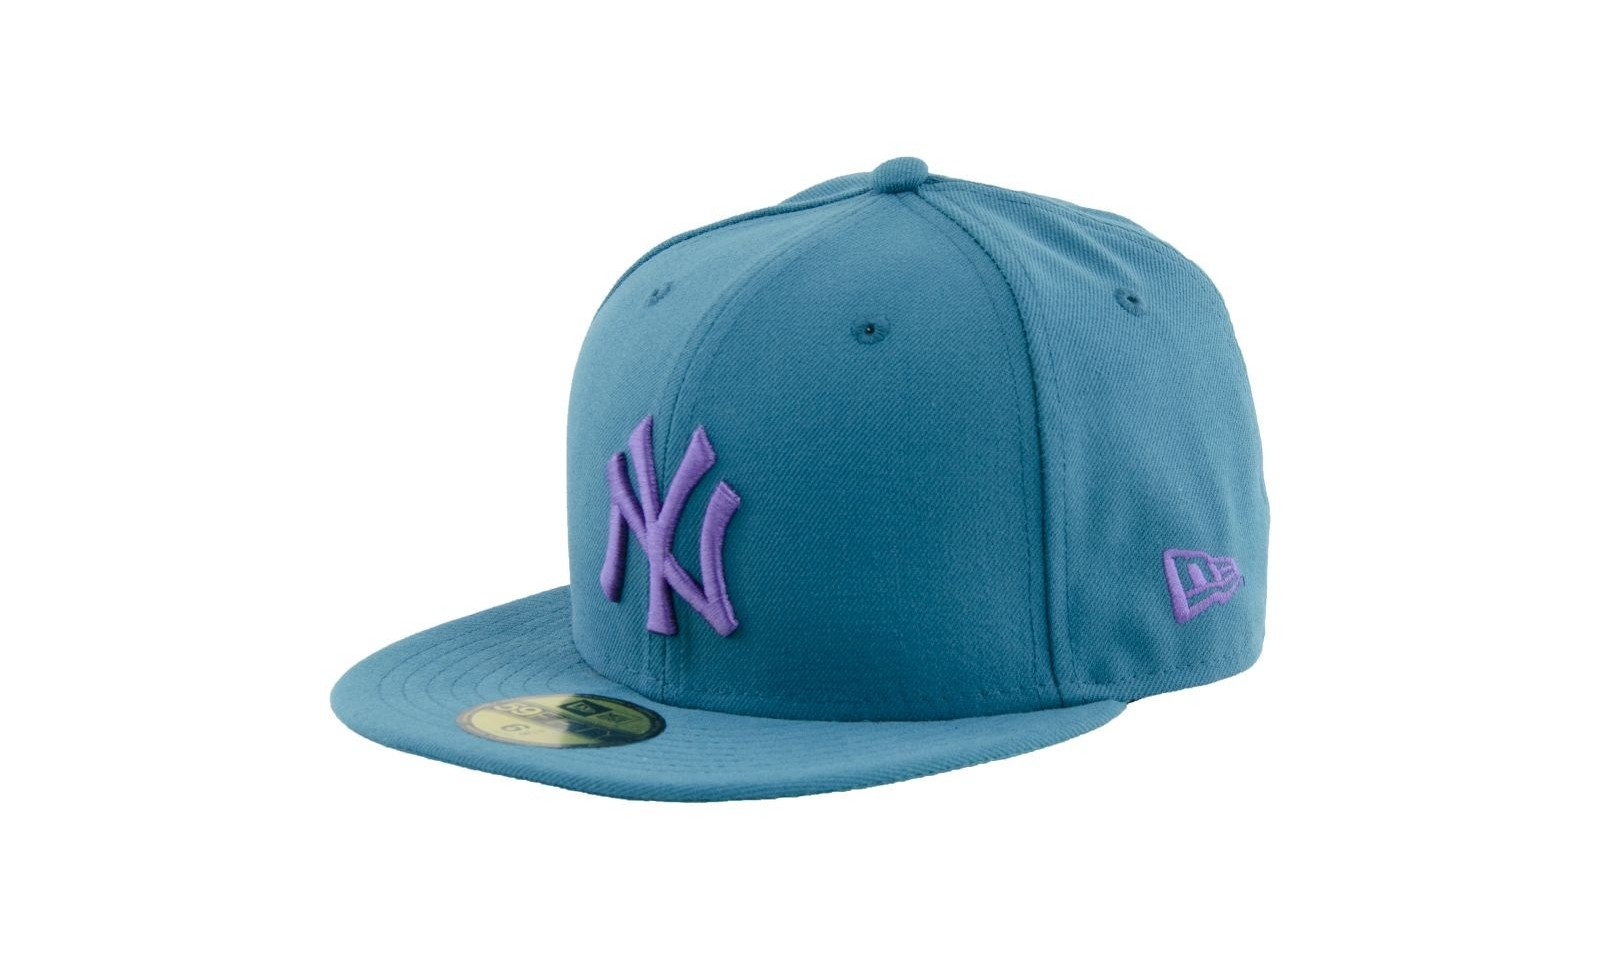 Newera Cappellino visiera piatta seasonal basic new york yankees TTWVPR 4ea1dd935080